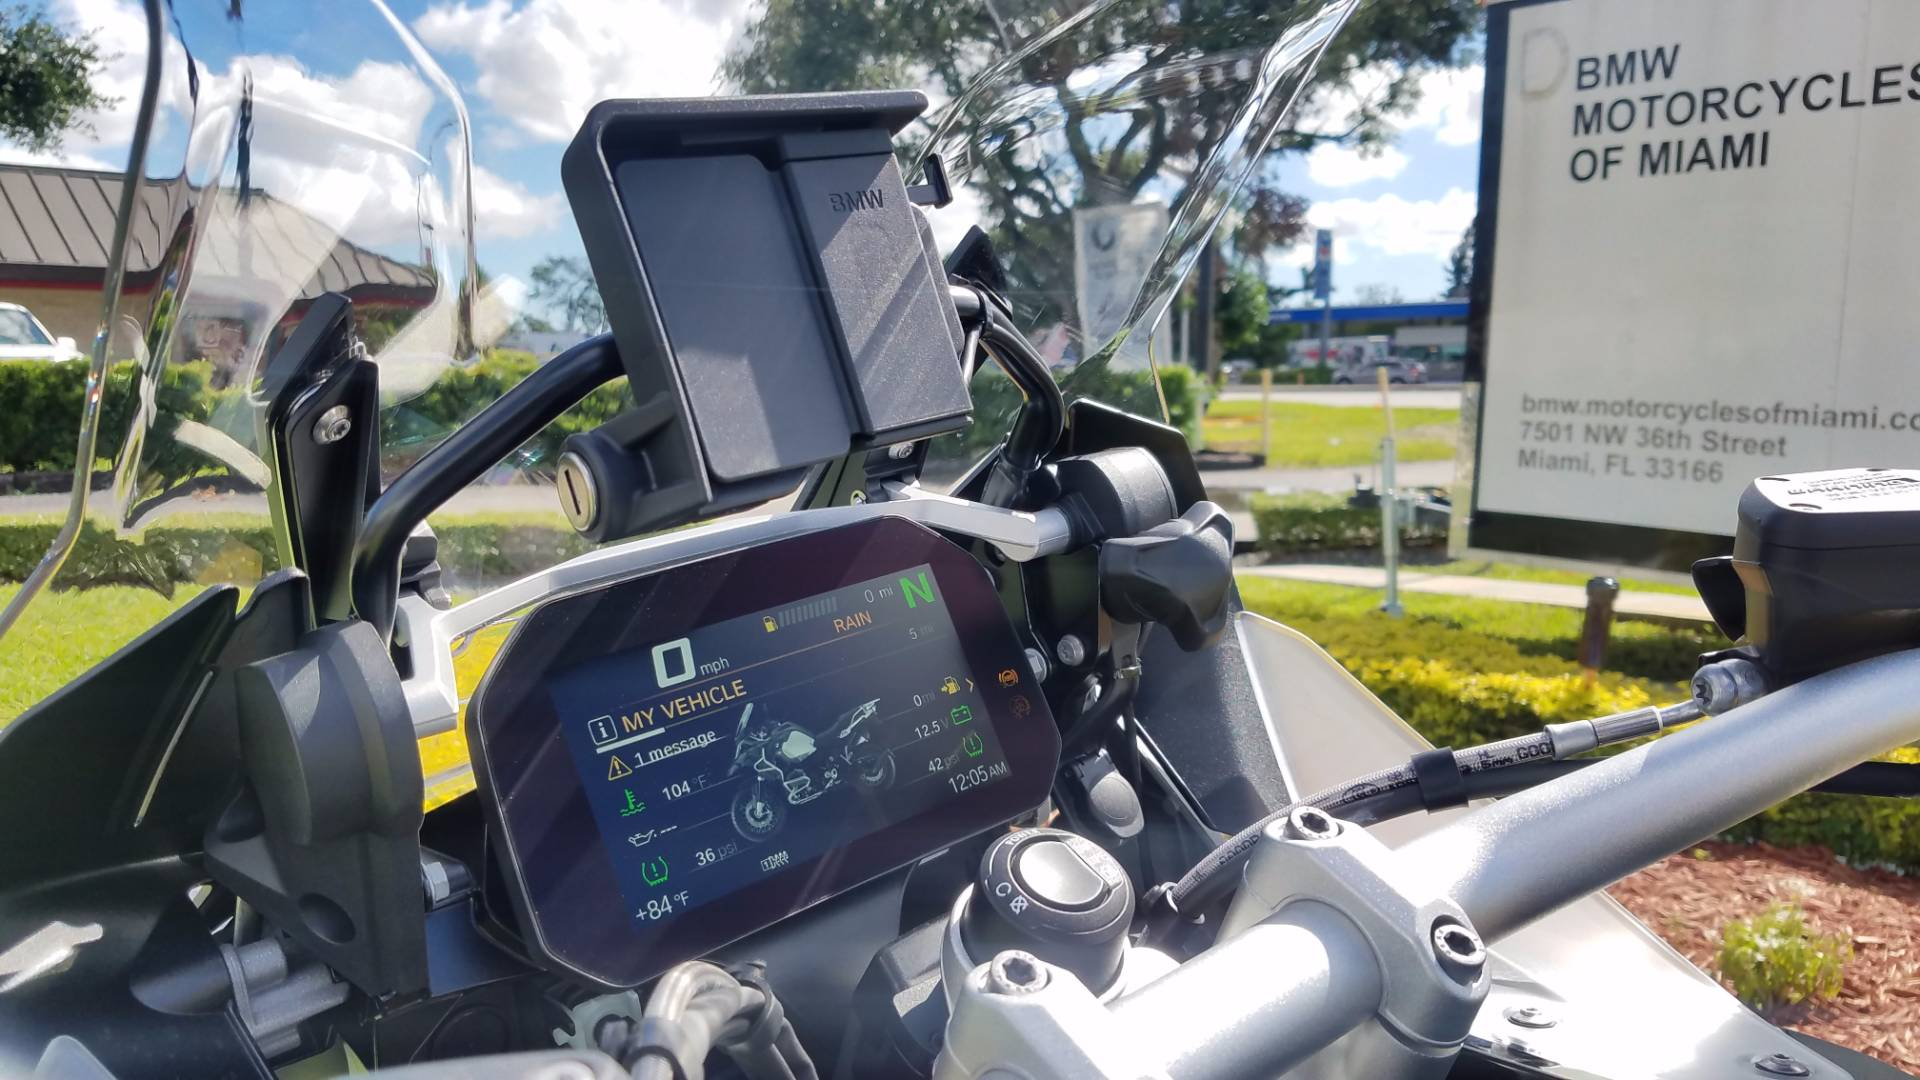 New 2018 Connectivity BMW R 1200 GSA For Sale, BMW R 1200 GS Adventure TFT Screen For Sale, BMW Motorcycle R 1200GSA, new BMW Adventure, New BMW Motorcycle